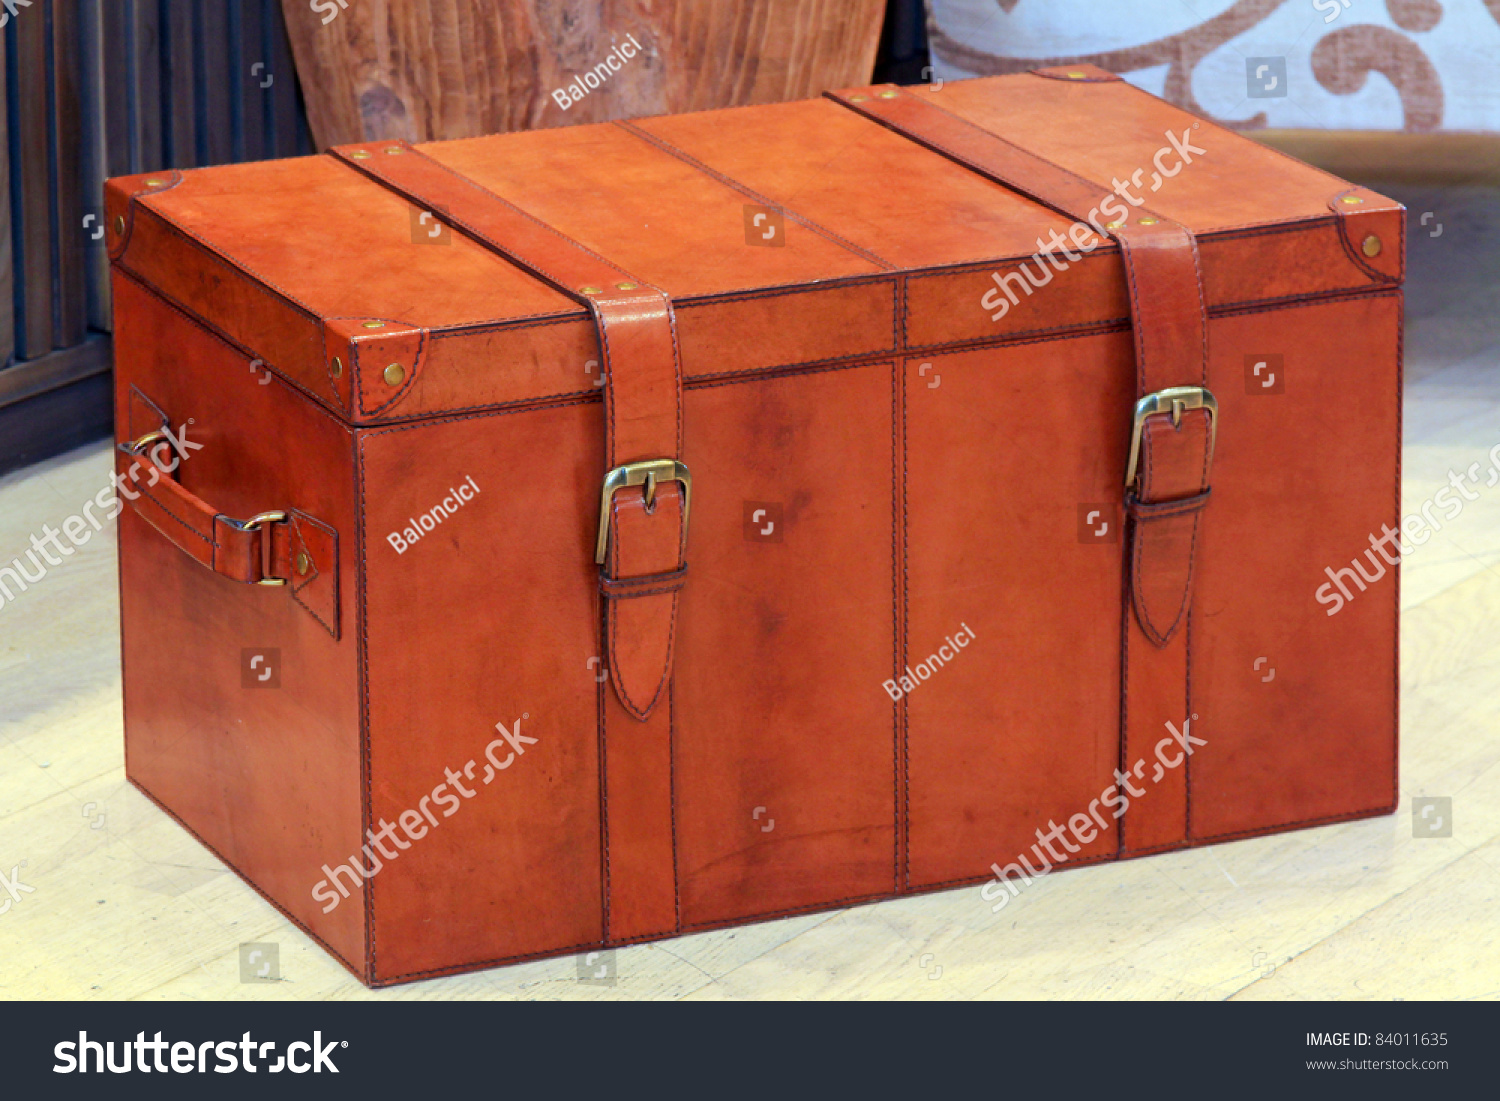 Vintage Style Brown Leather Luggage Trunk Stock Photo 84011635 ...